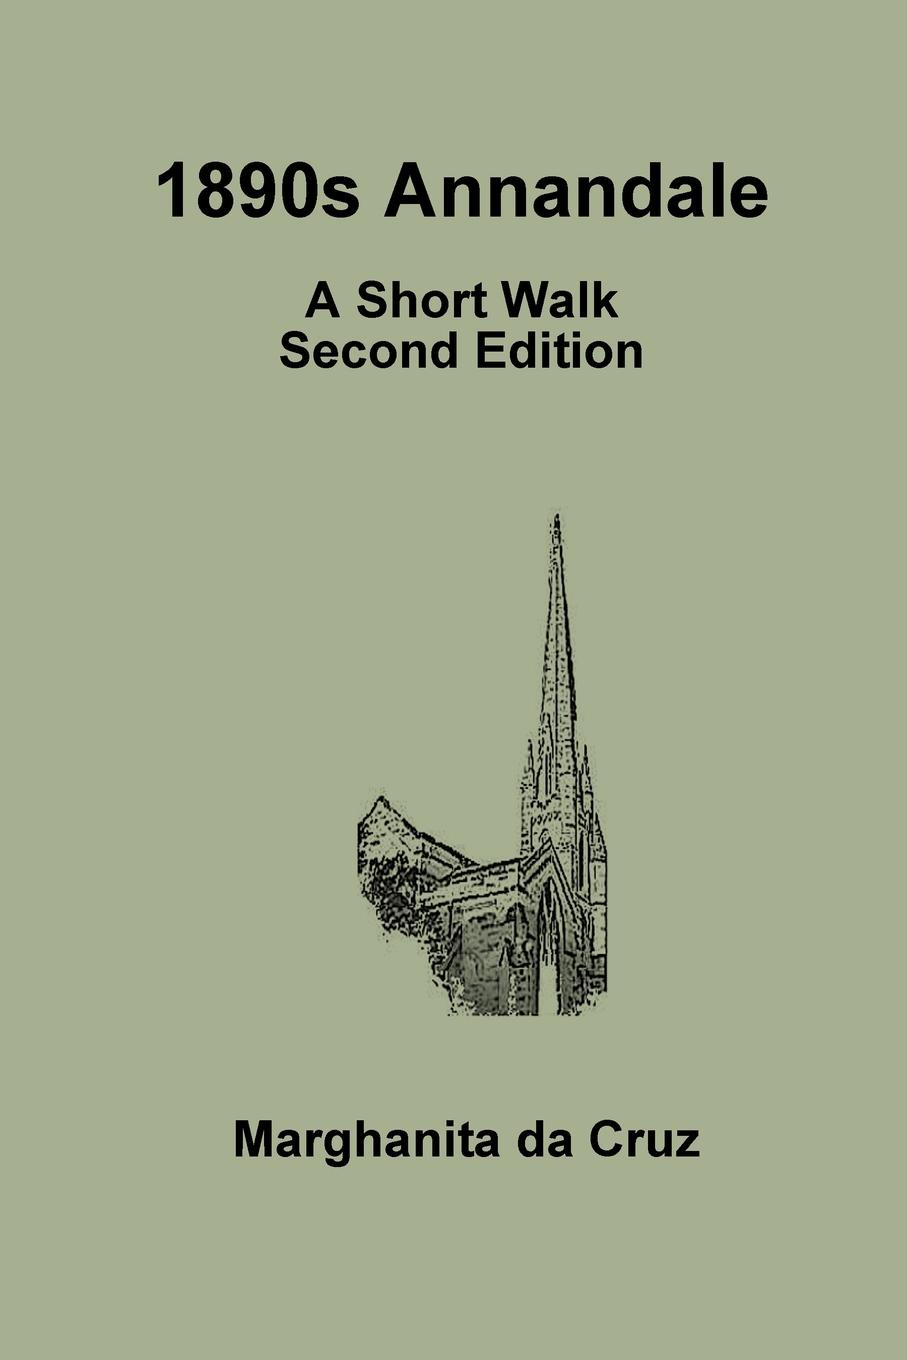 Marghanita da Cruz 1890s Annandale. A Short Walk Second Edition ice age prehistoric animal a mammoth in a walk collection children toys a mammoth in a walk